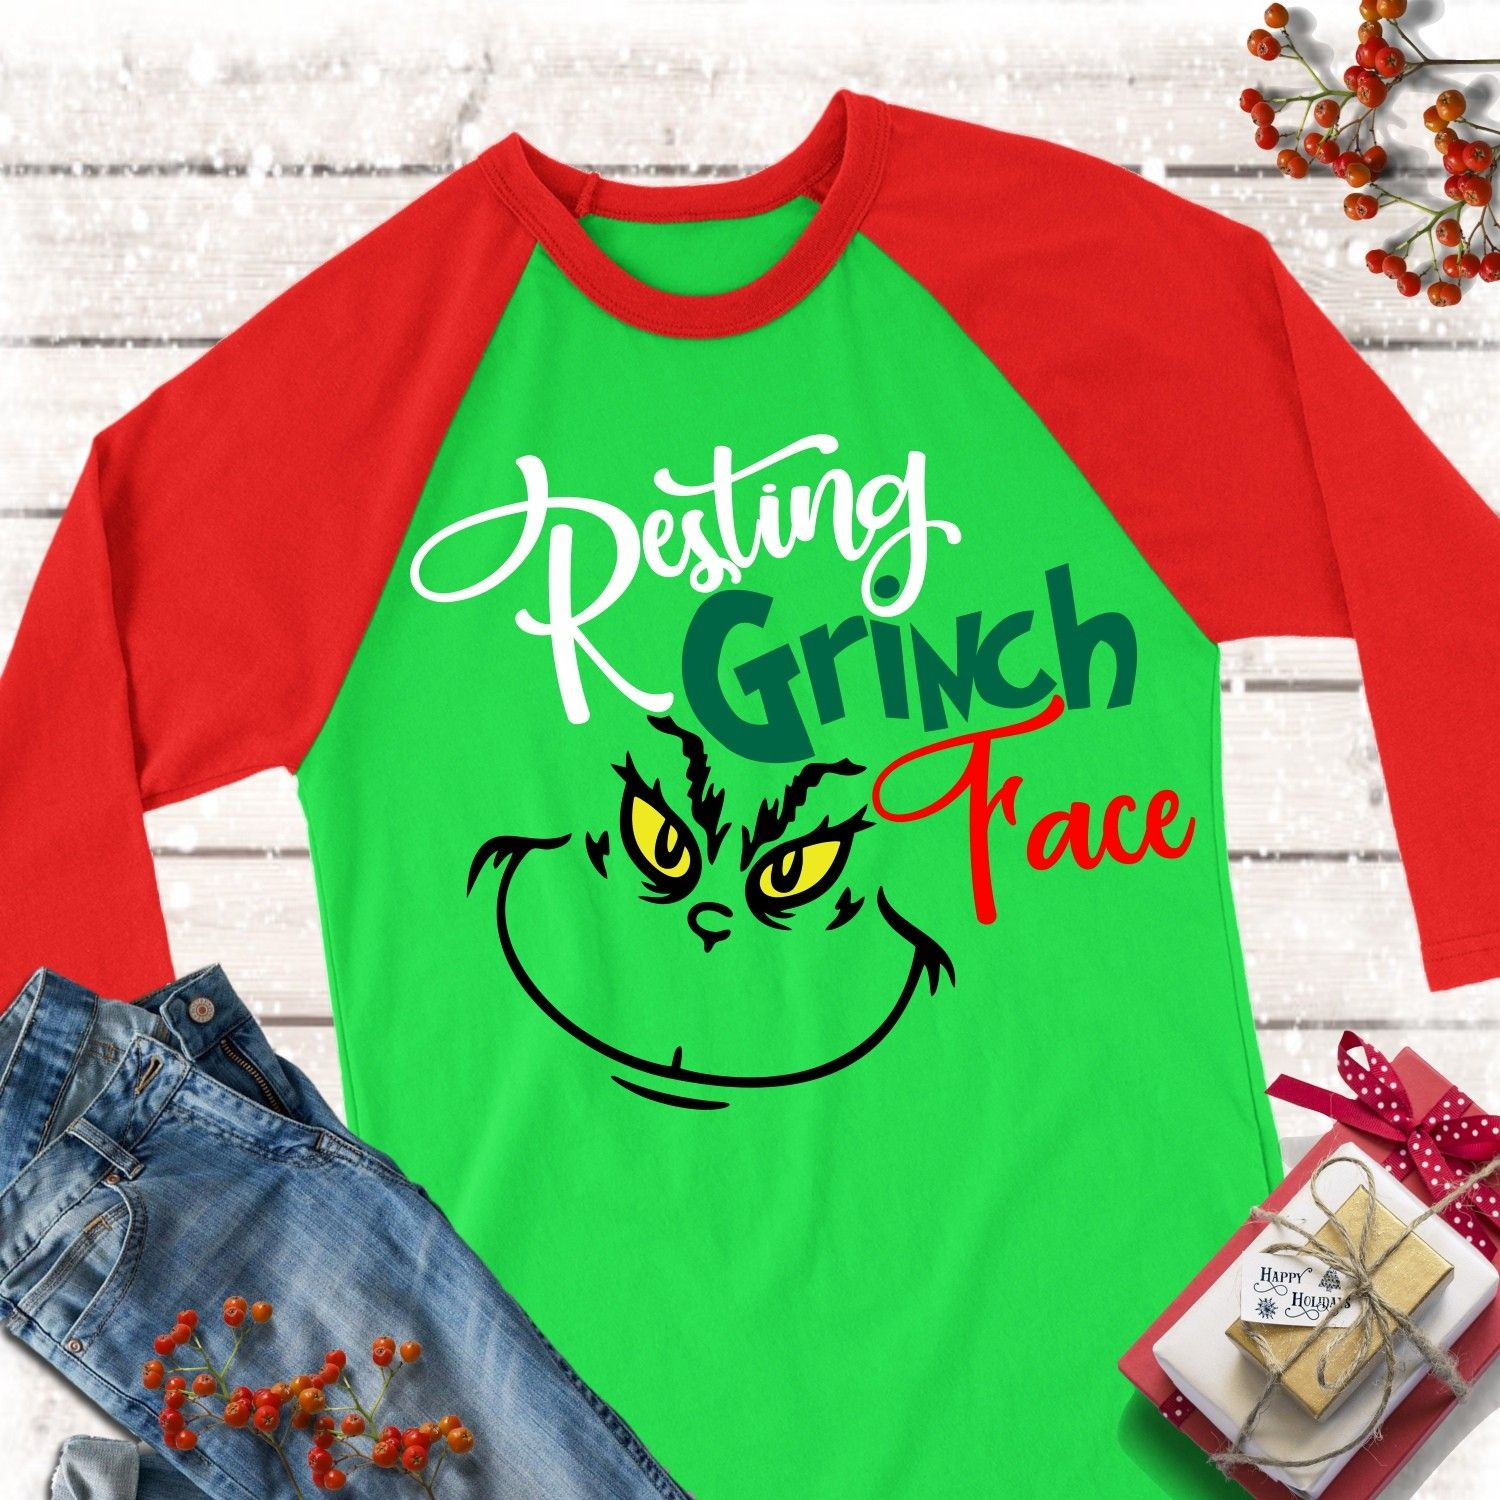 Resting Grinch Face,Grinch Face svg,Grinch Face Shirts,The